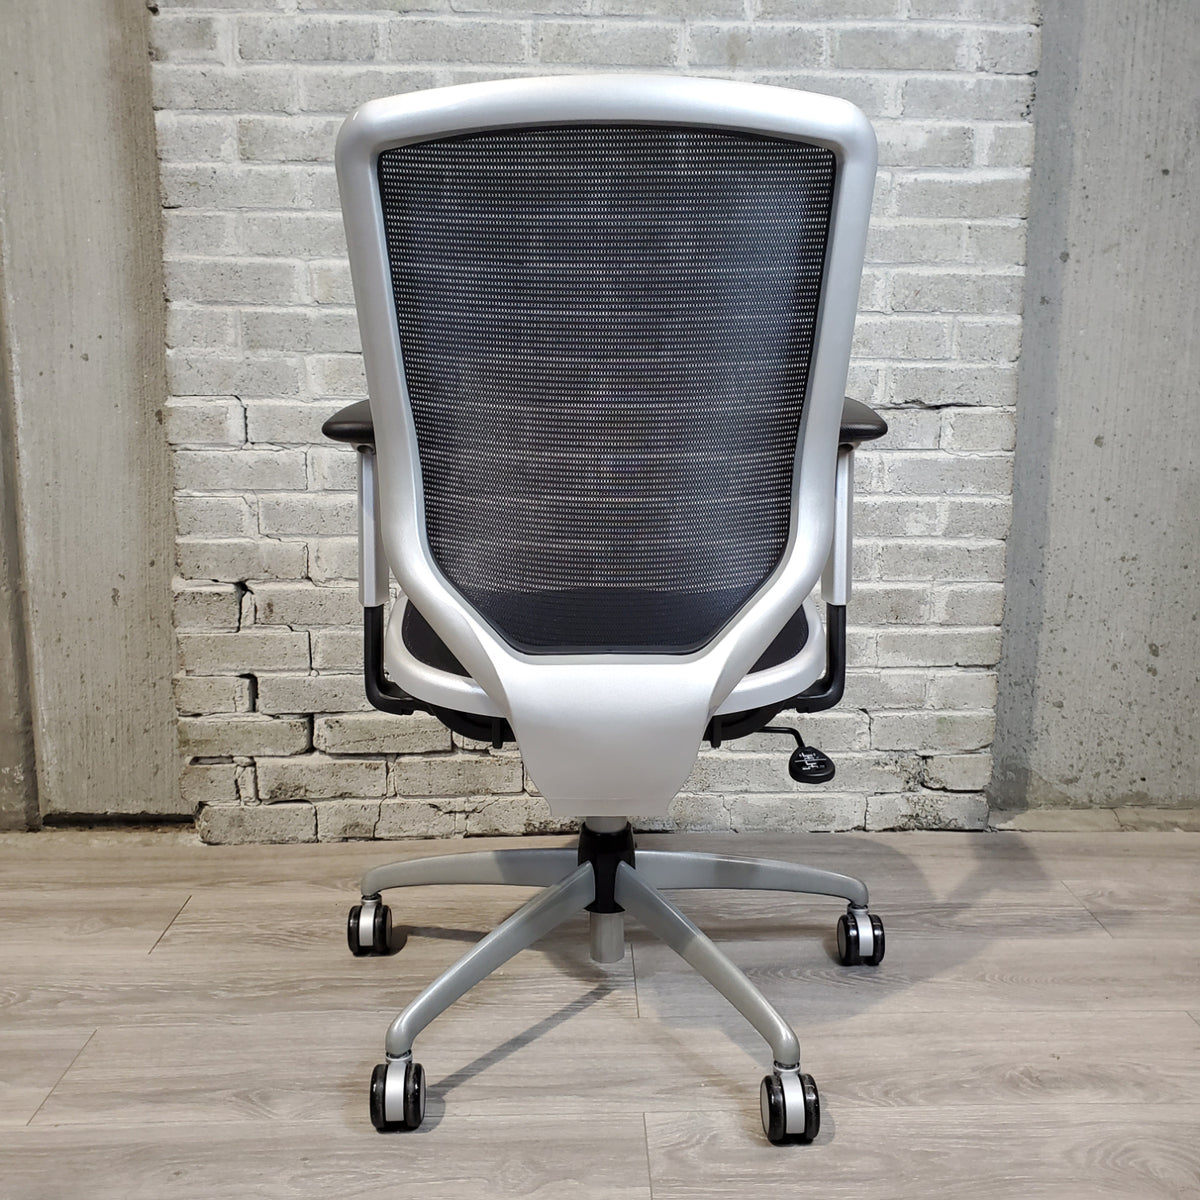 Pre-Owned - IN STOCK Boda High-Back Black Mesh Task Chair, Silver Frame SPECIAL! - Duckys Office Furniture